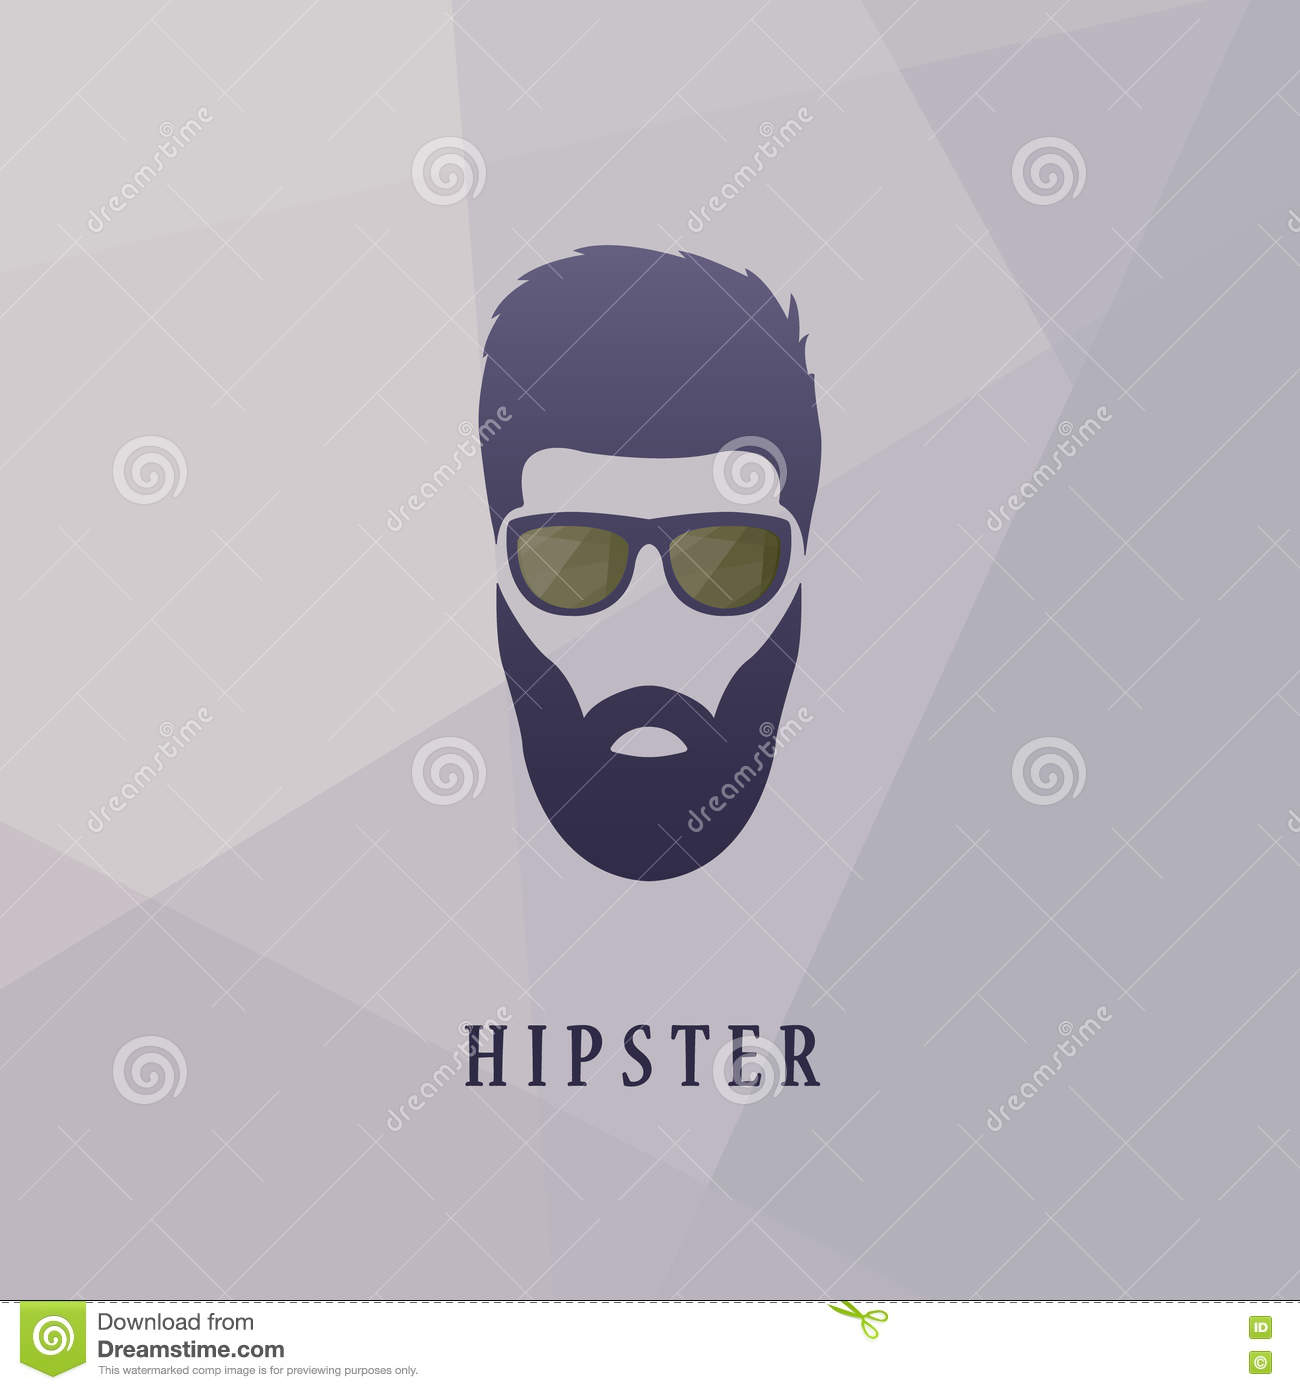 Gentleman Face Hipster Style Royalty Free Cartoon 83890433